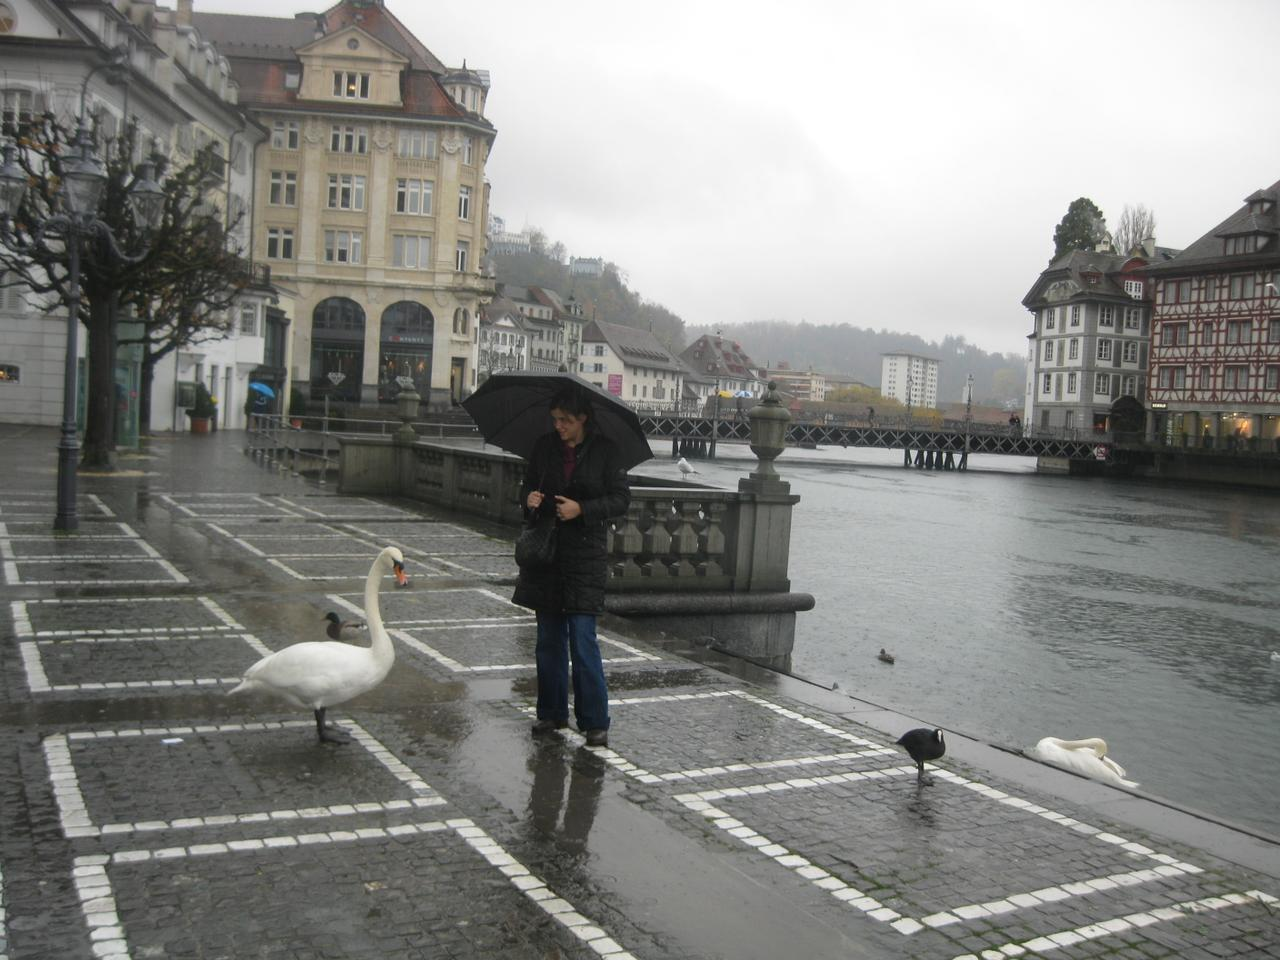 ../galleries/Luzern/IMG_5469.JPG